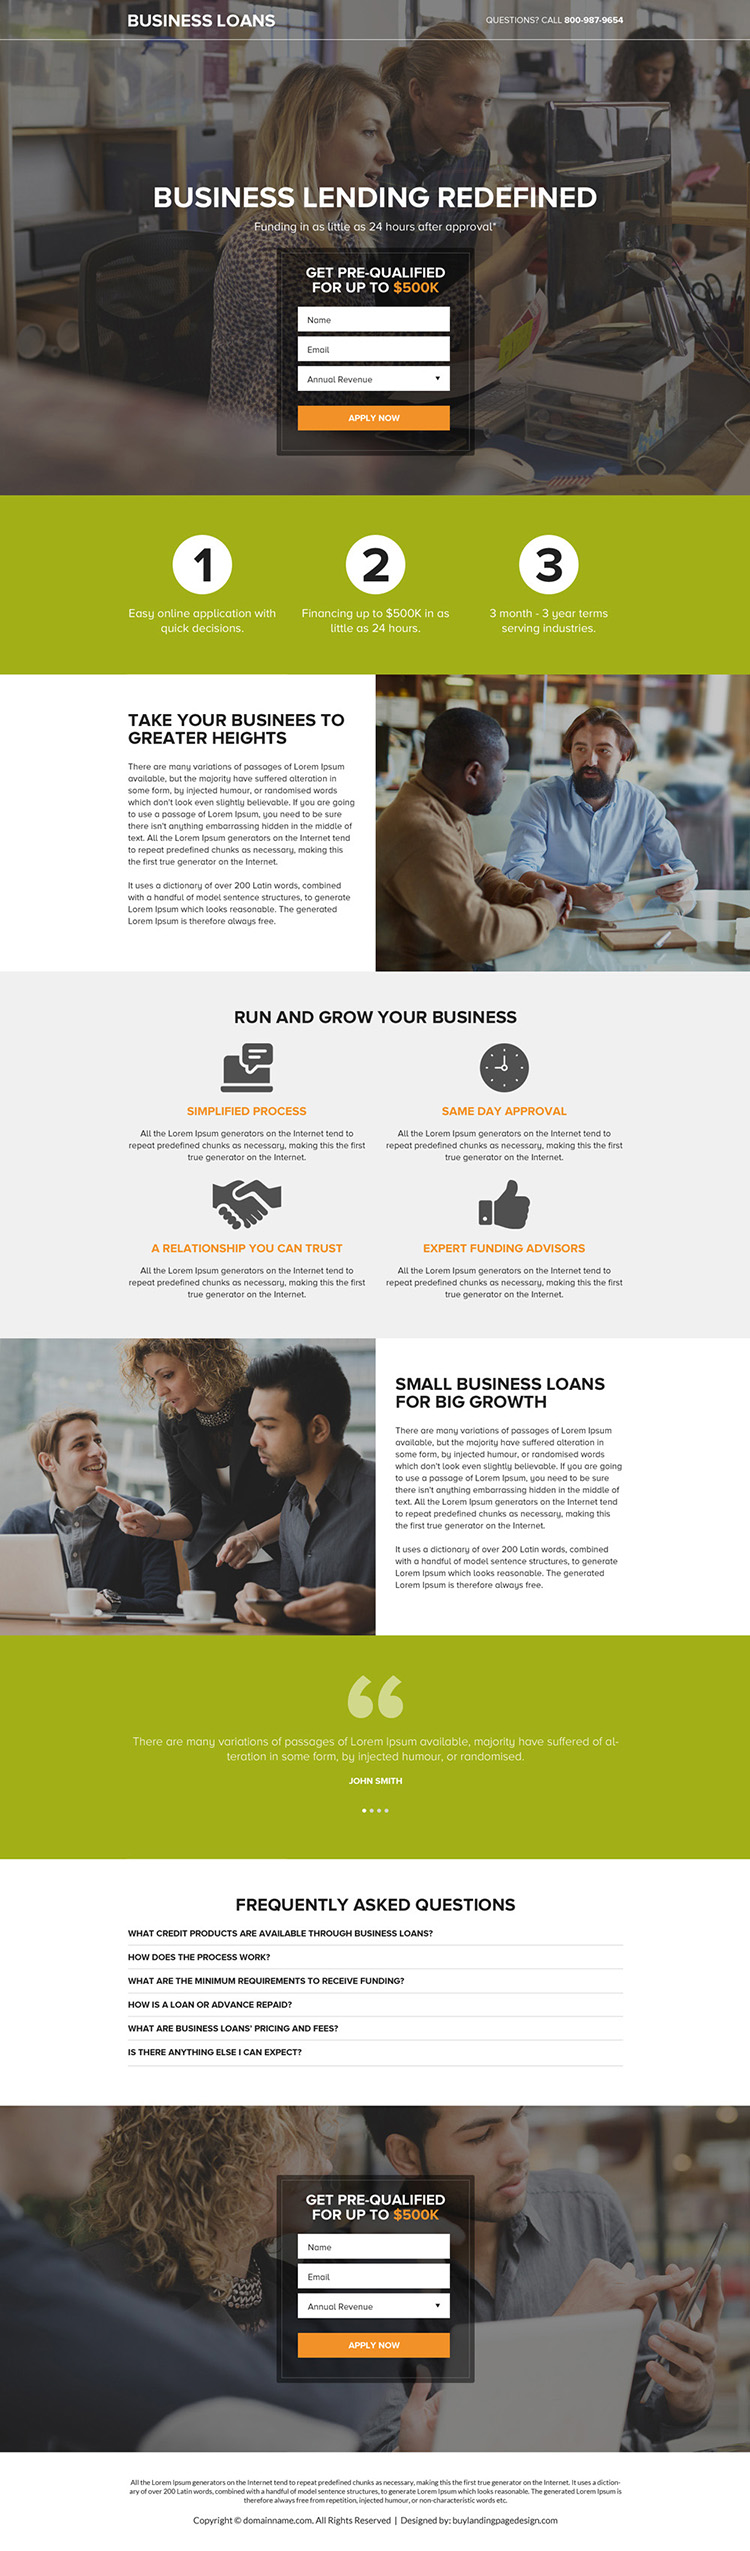 small business loan lending responsive landing page design